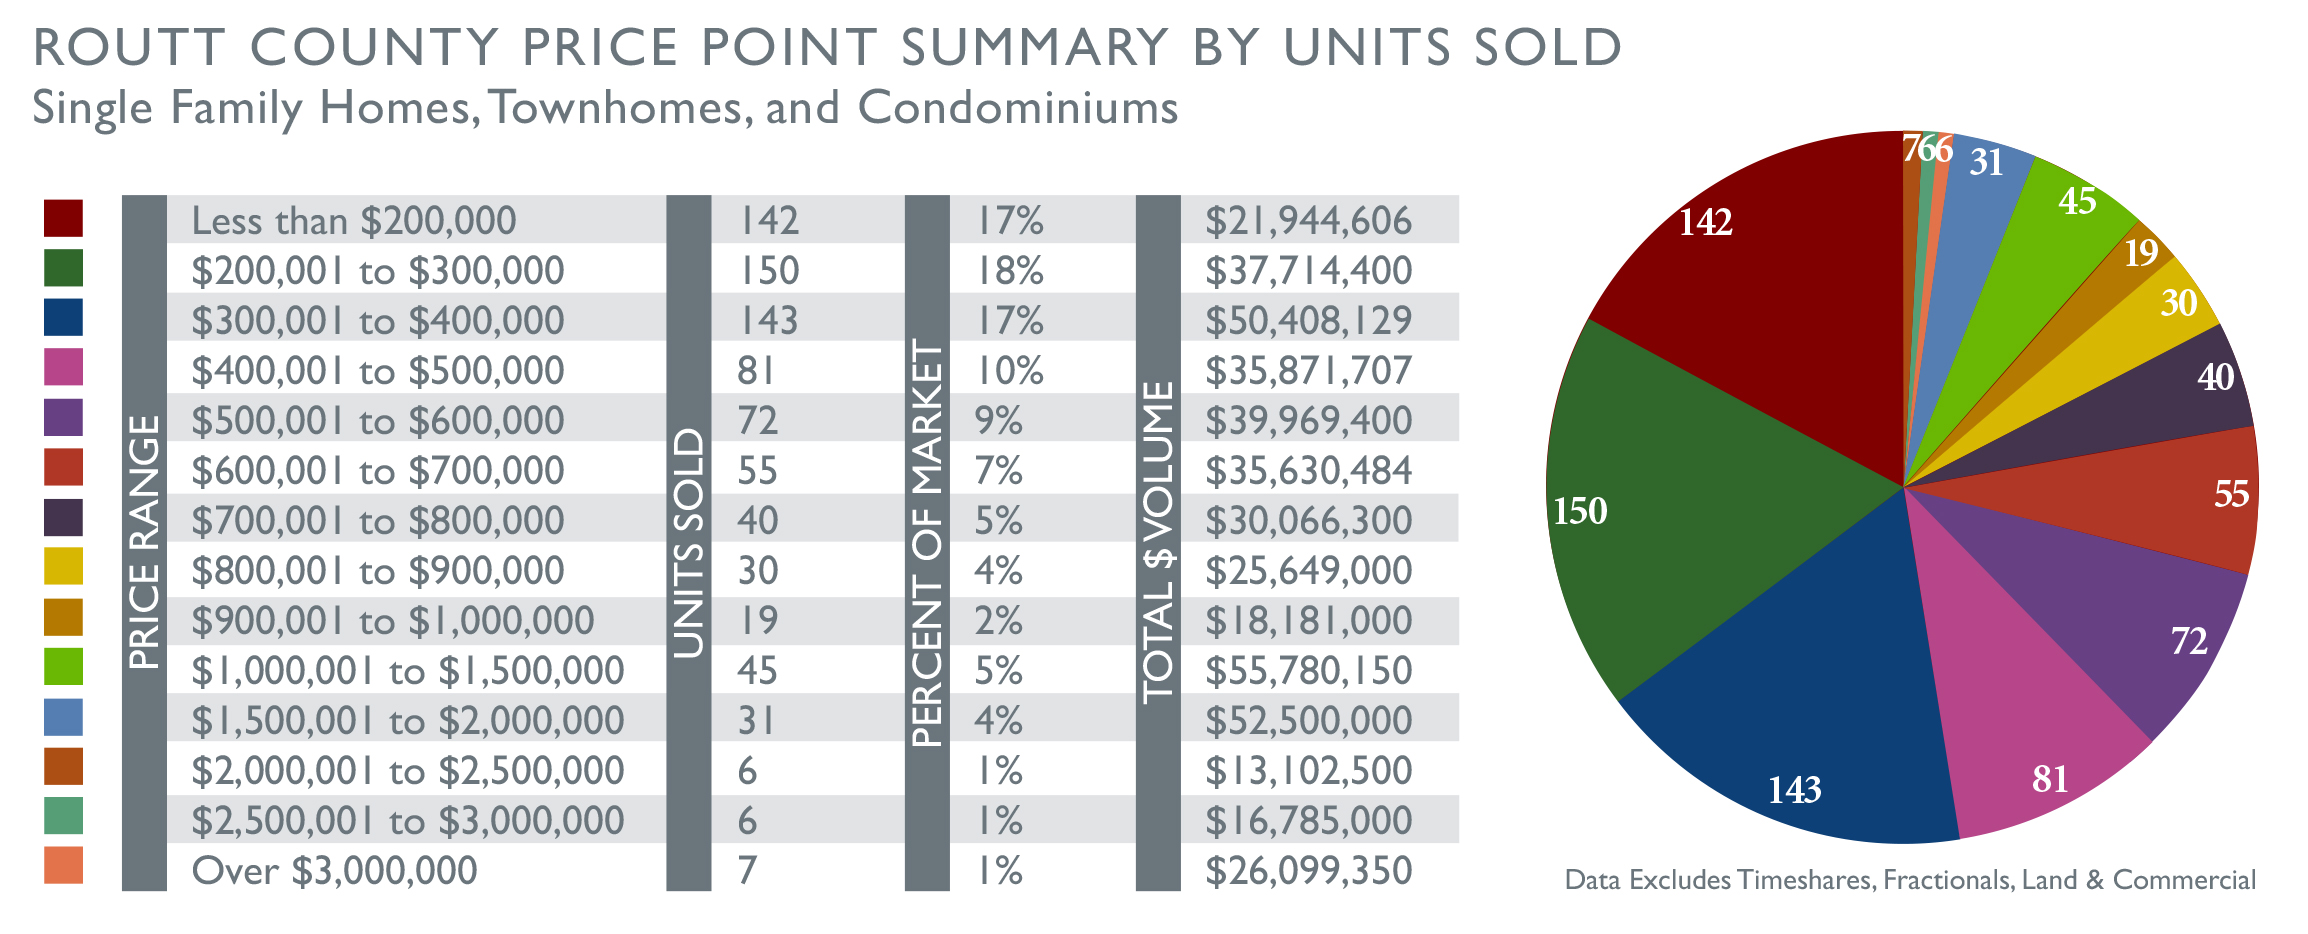 Routt County Real Estate Price Point